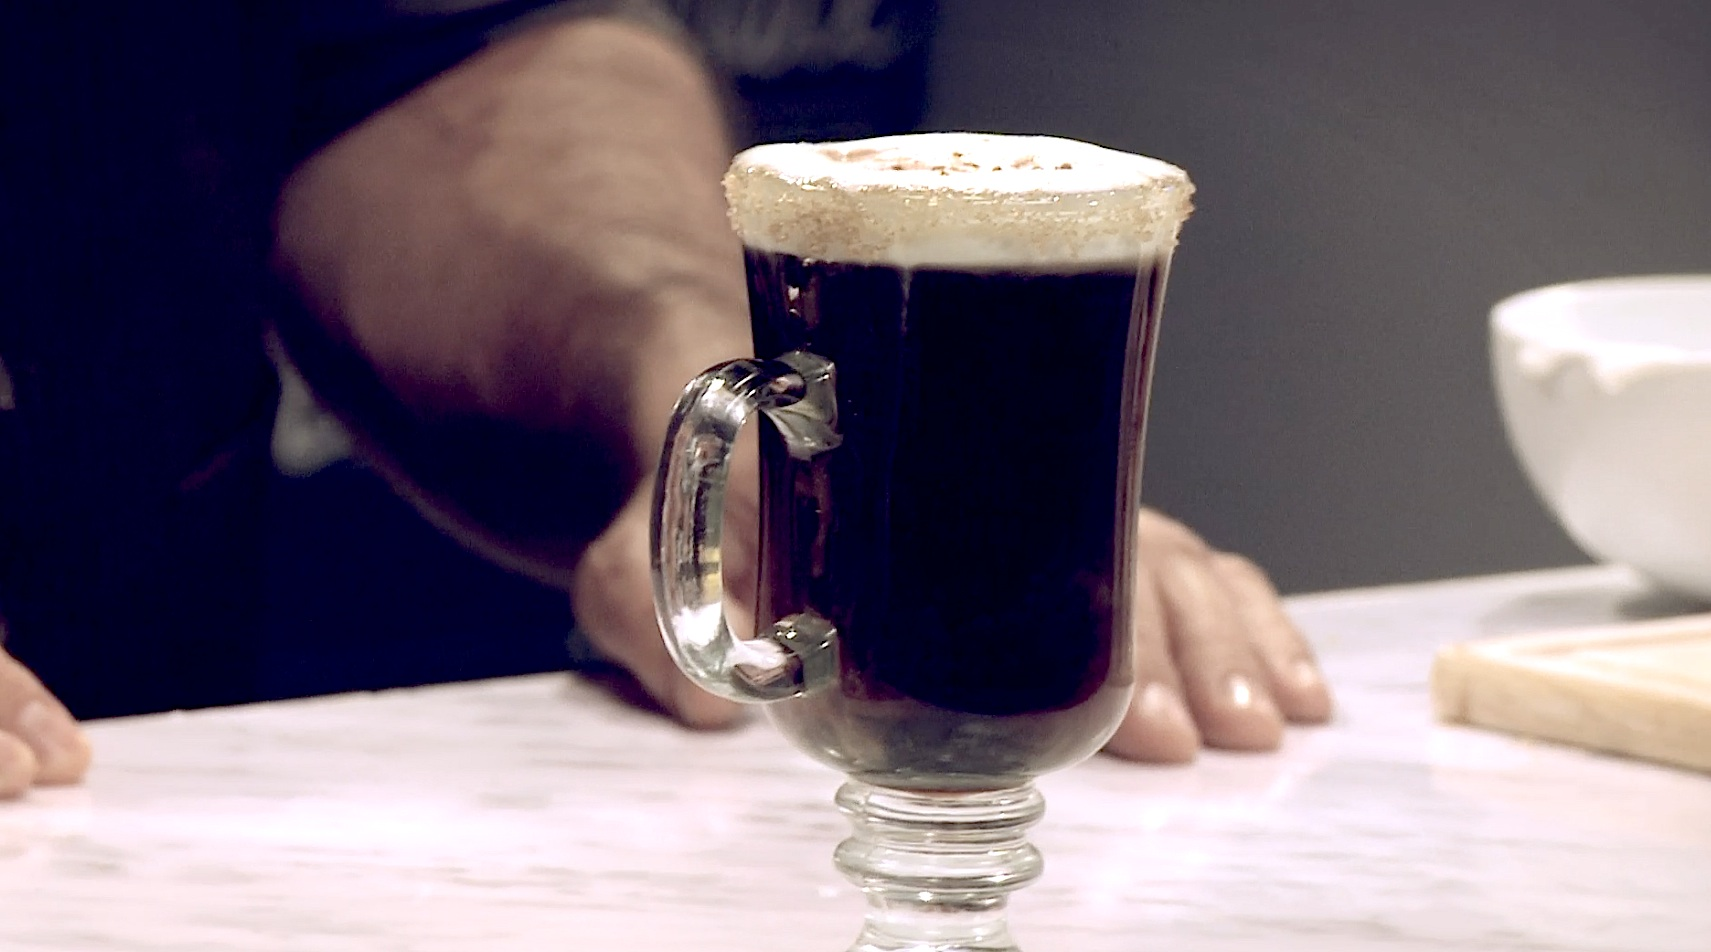 How To Make A Spanish Coffee